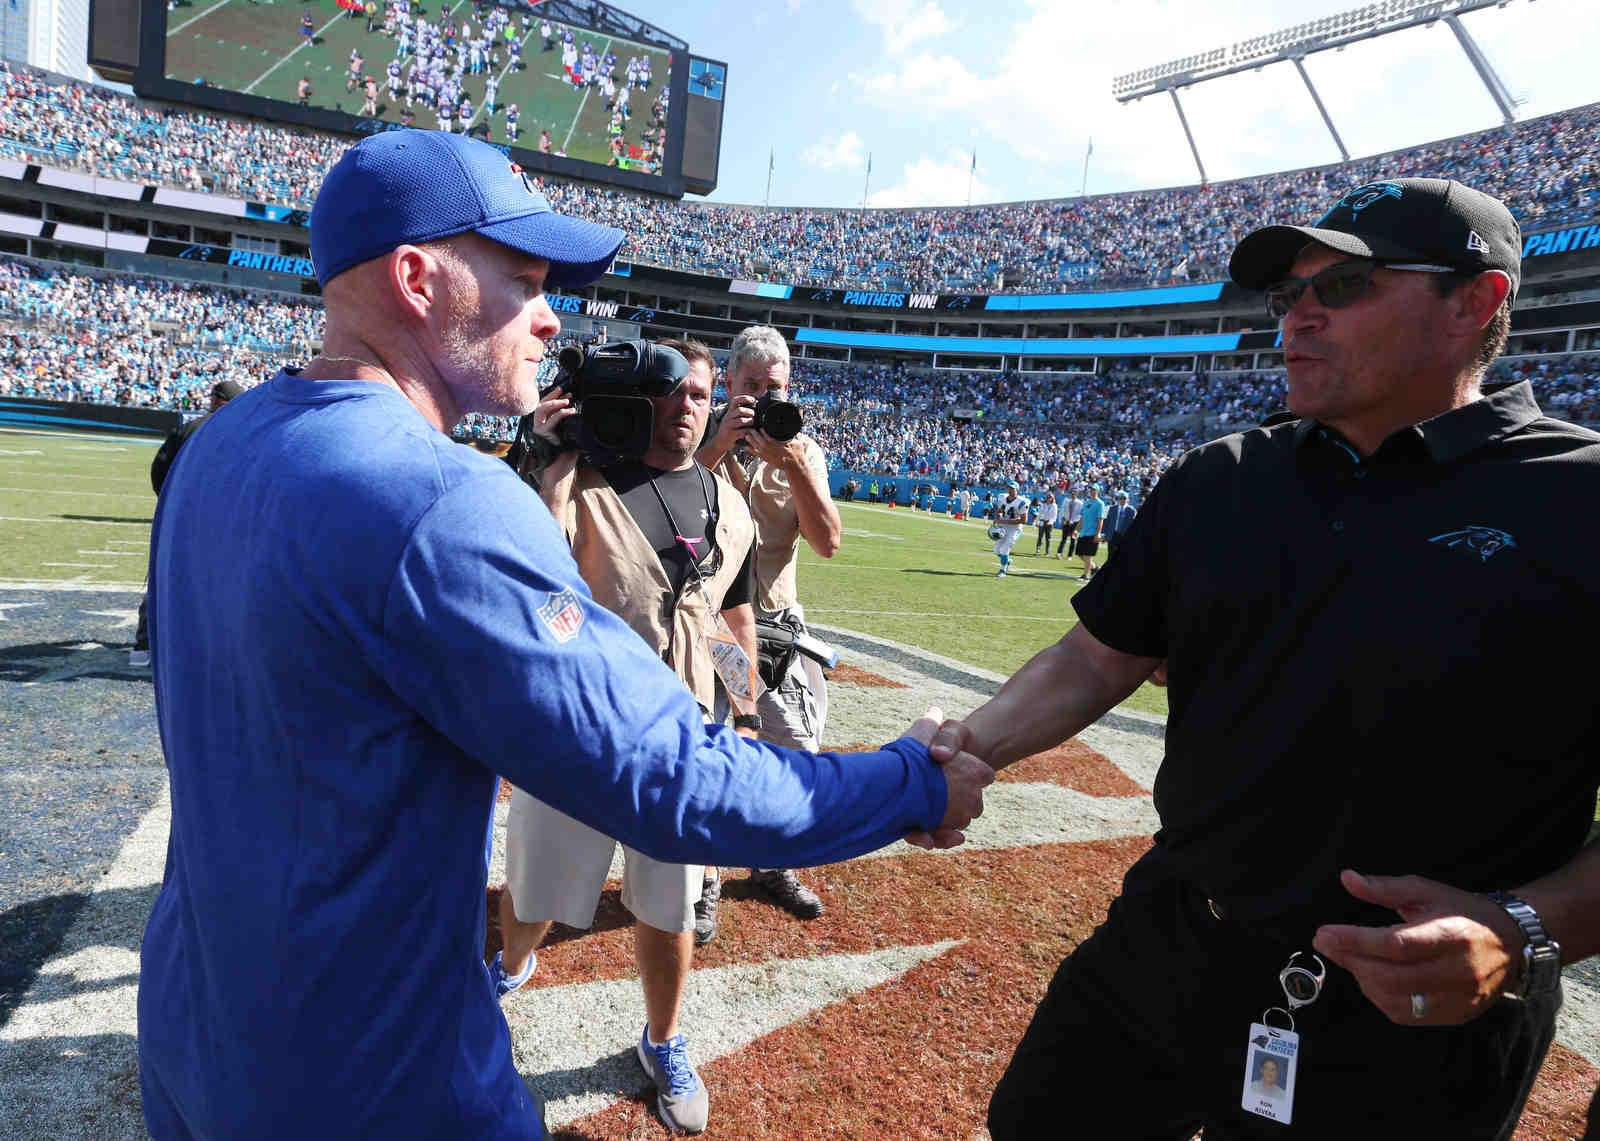 Buffalo Bills head coach Sean McDermott shakes the hand of Carolina Panthers head coach Ron Rivera at the end of the game.